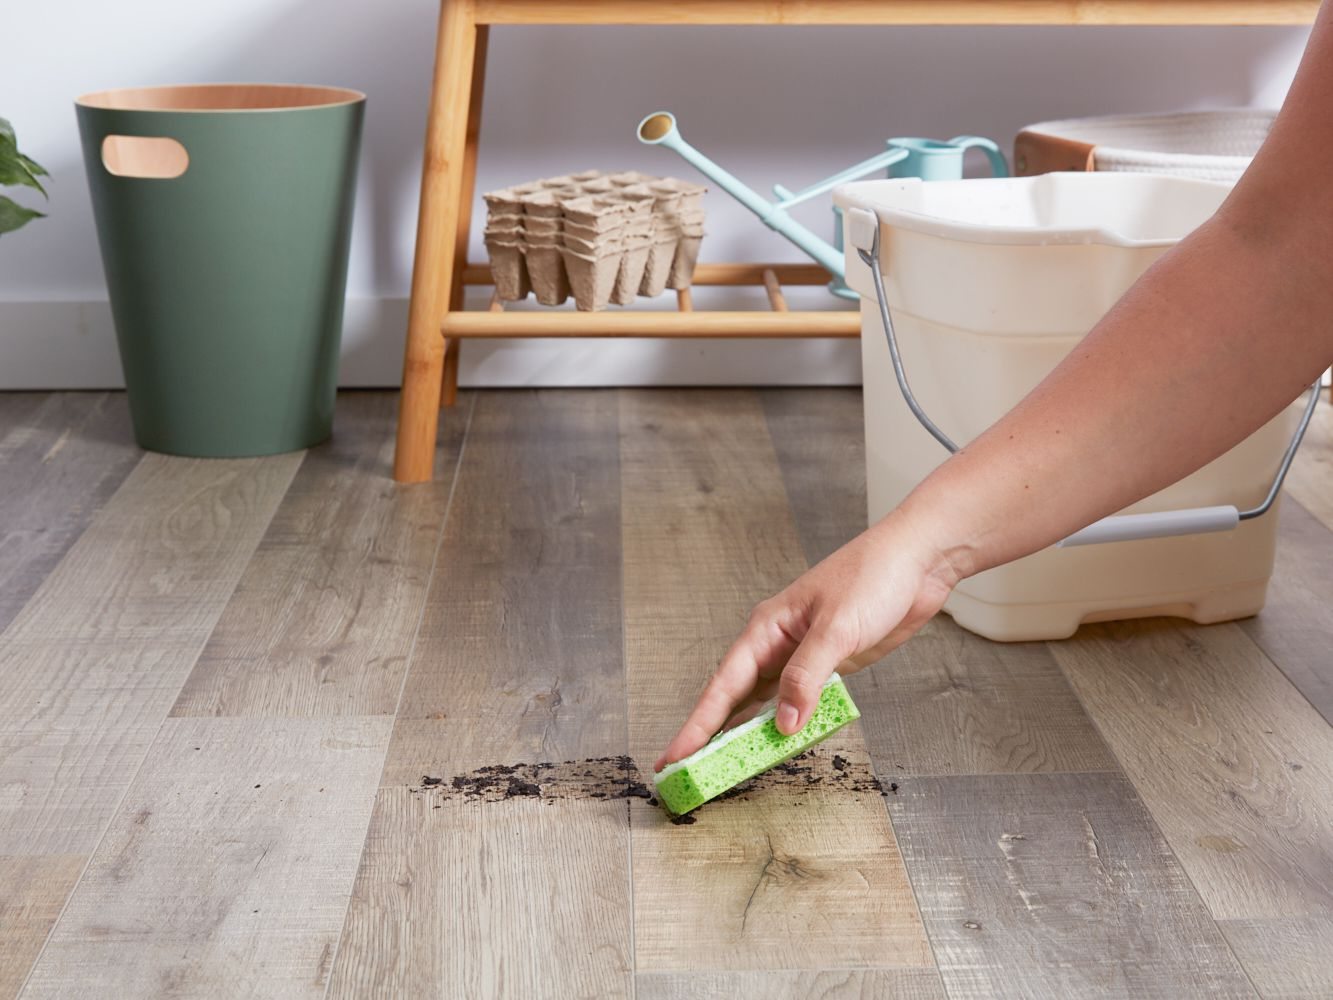 How To Clean Laminate Wood Floors, Best Way To Get Smell Out Of Laminate Flooring